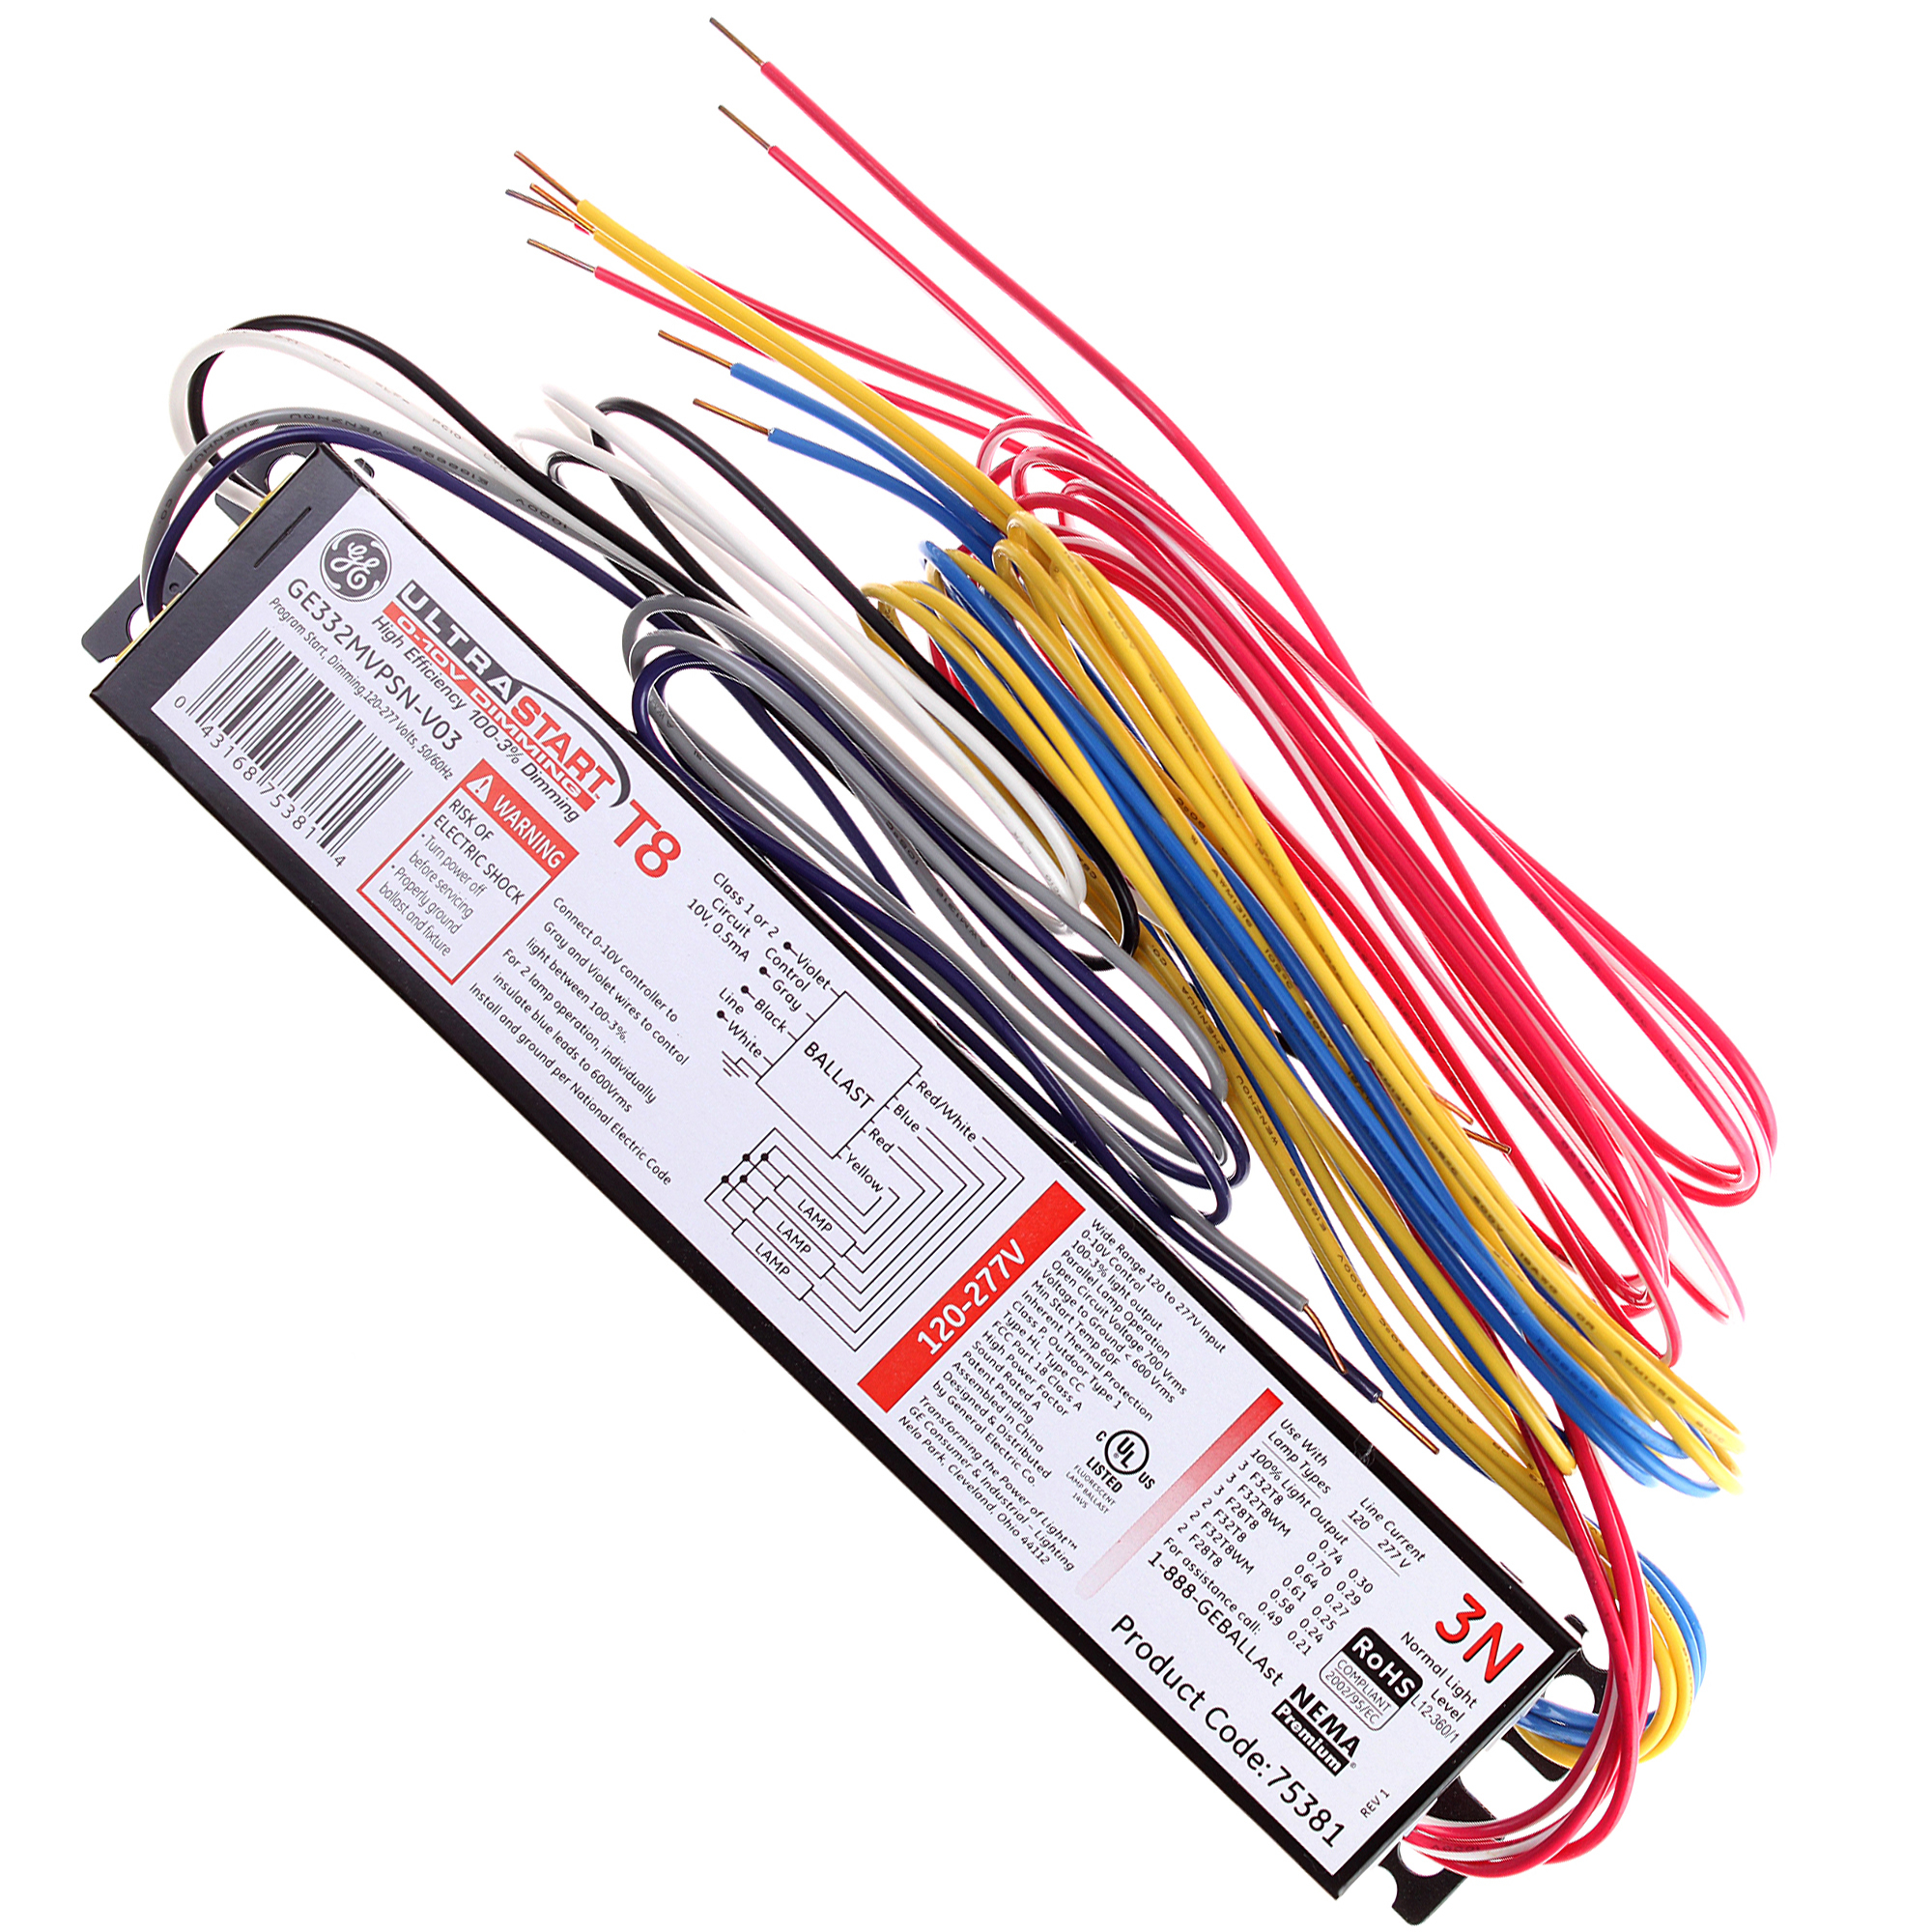 hight resolution of t8 dimming ballast wiring diagram